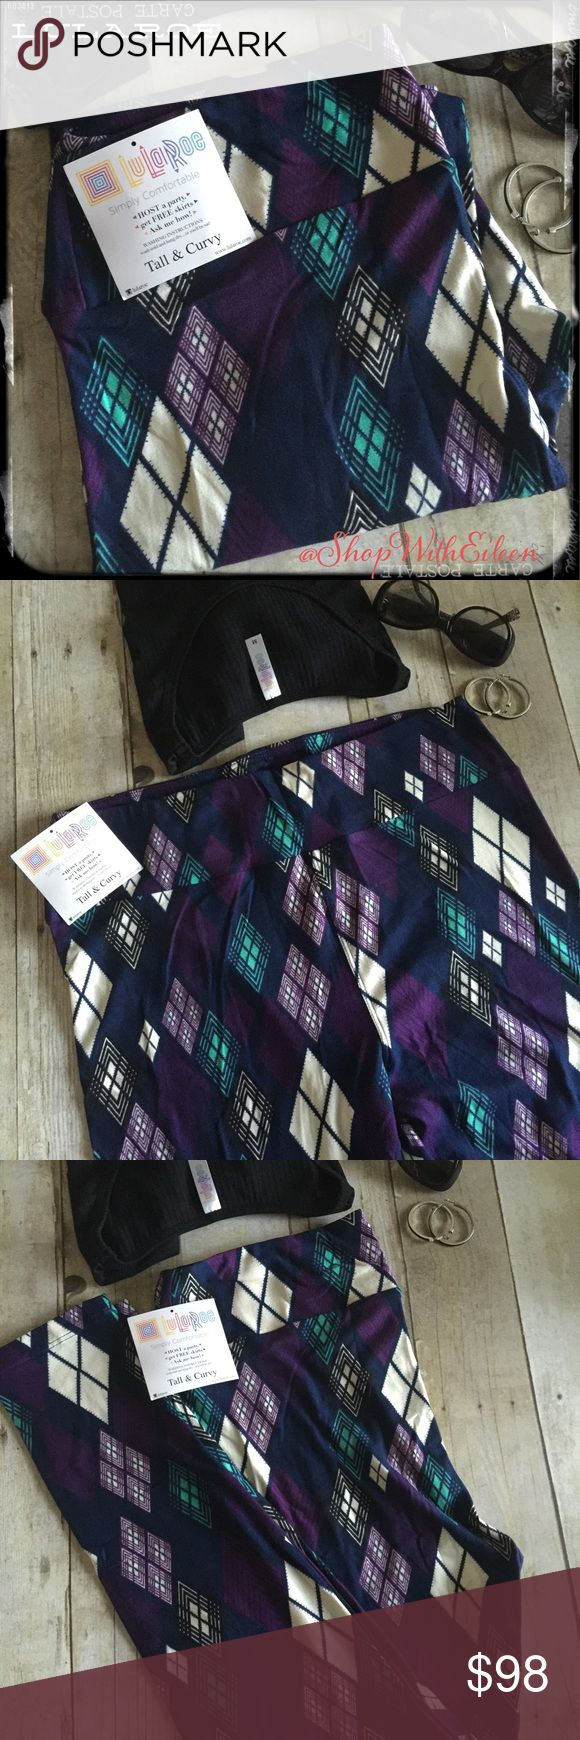 LulaRoe Royal Purple Aqua Argyle TC Leggings!  LulaRoe Royal Purple Aqua Argyle TC Leggings! Preppy is BACK! If you love that preppy look... These leggings are for YOU!!! Navy Blue background with royal purple, aqua & black argyle print! Very sought after & hard to find! Unbelievable! These are made in Indonesia. * I am not a consultant… I am just a LulaRoe addict and love the hunt to find great prints! Enjoy!  FIRM! LuLaRoe Pants Leggings